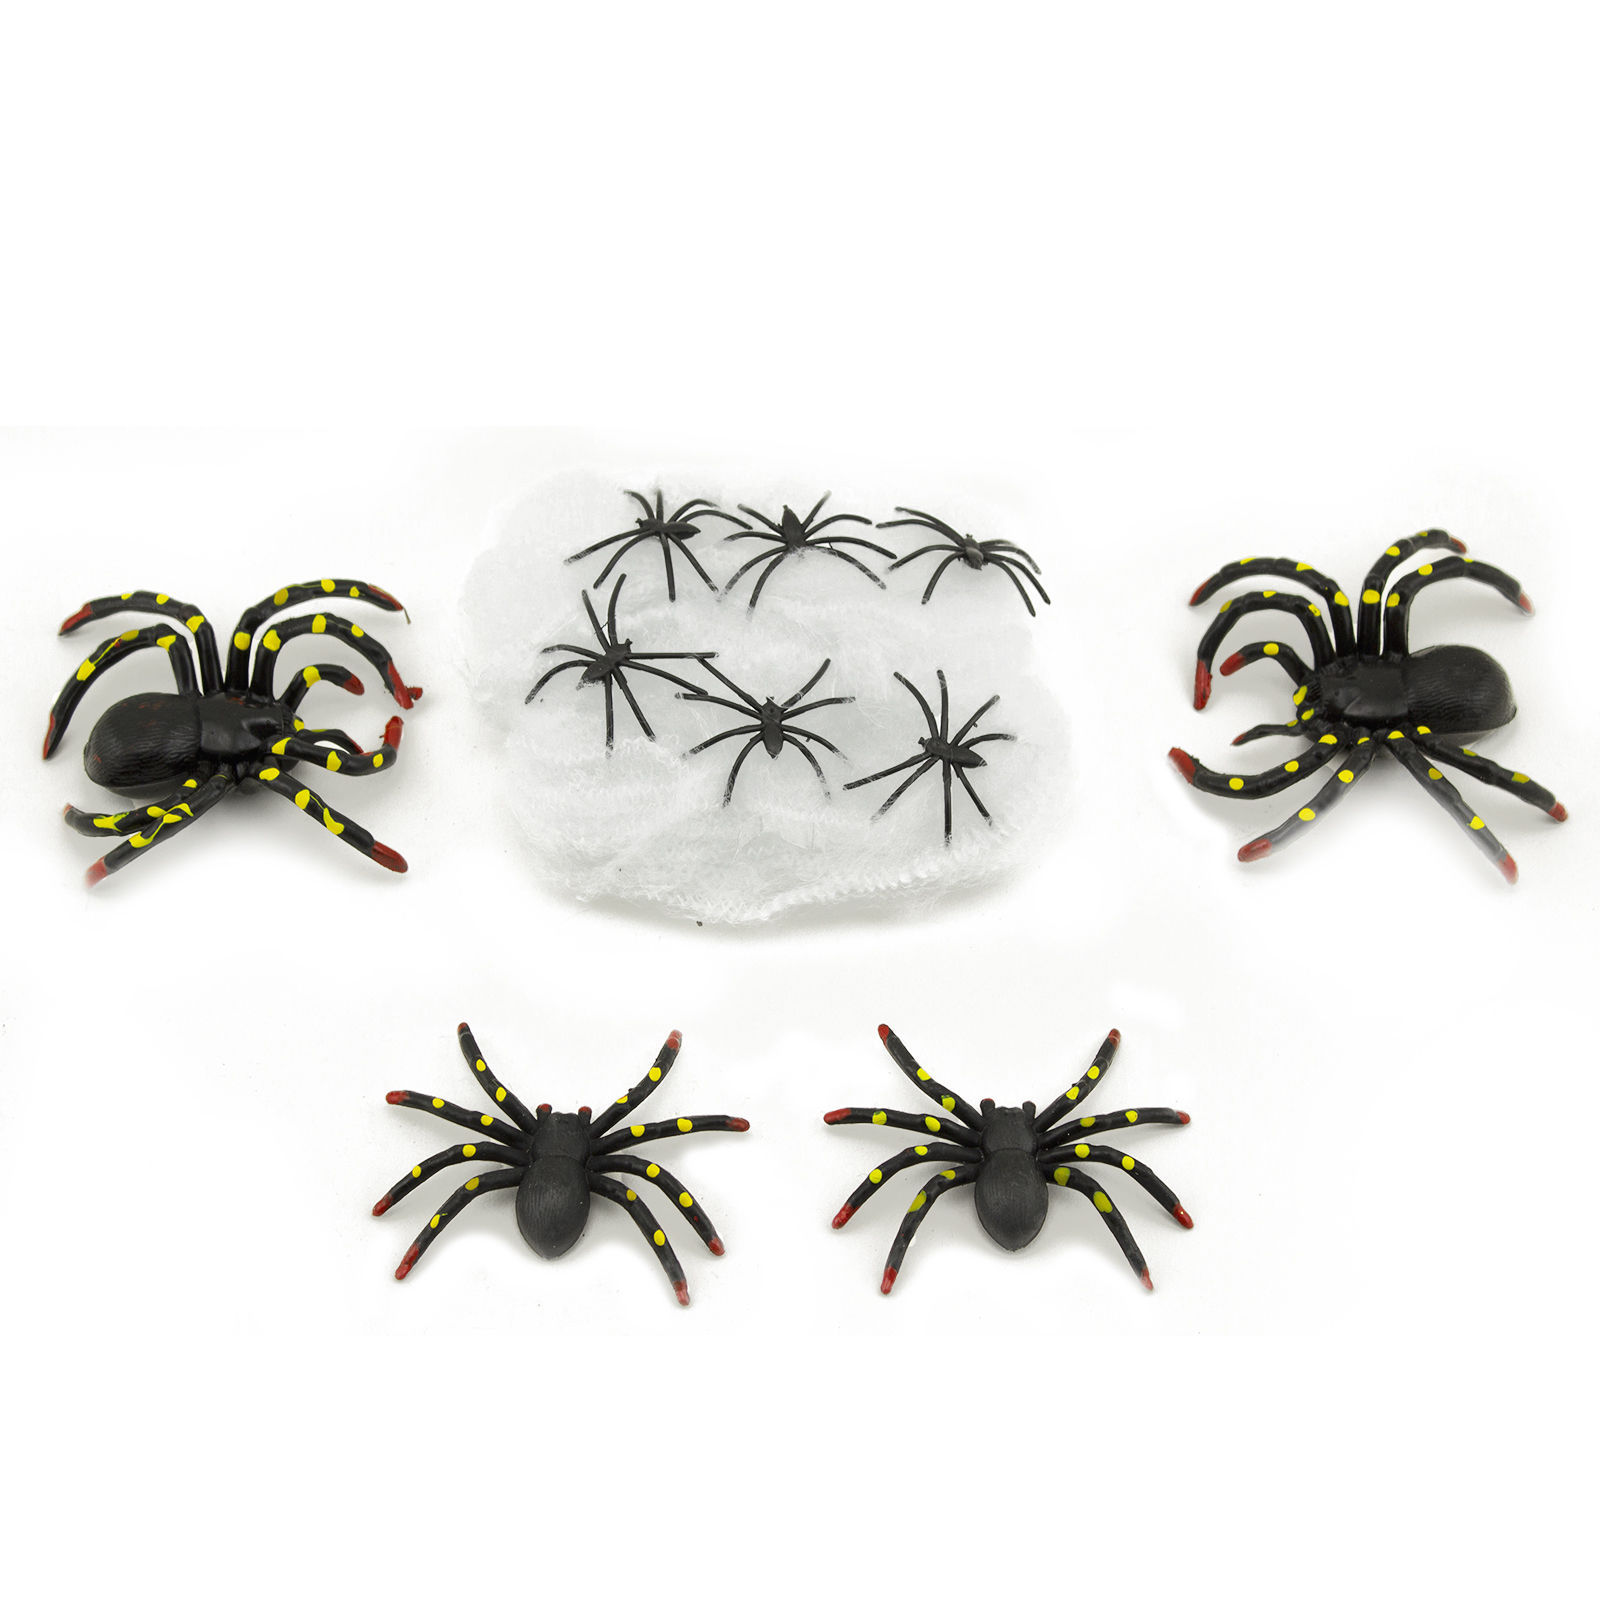 10 Pcs Plastic Scary Black Spiders Stretchable Web Halloween Haunted House Decor